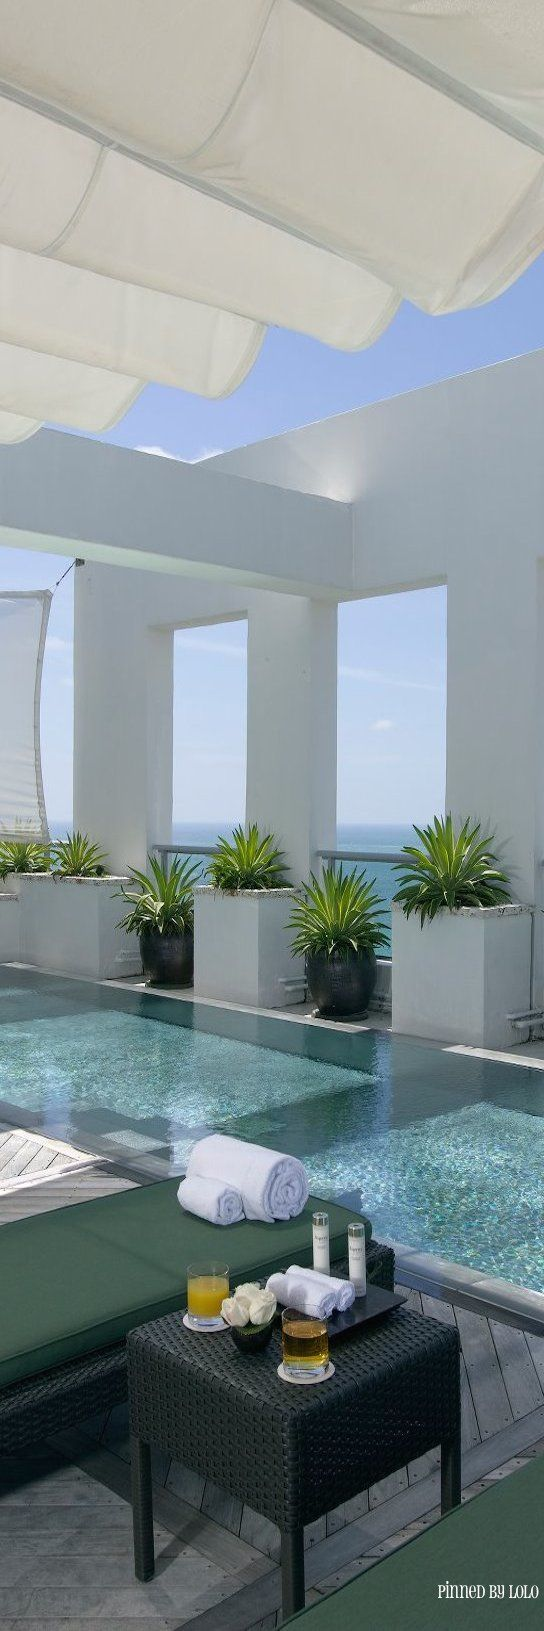 Luxe outdoor pool area